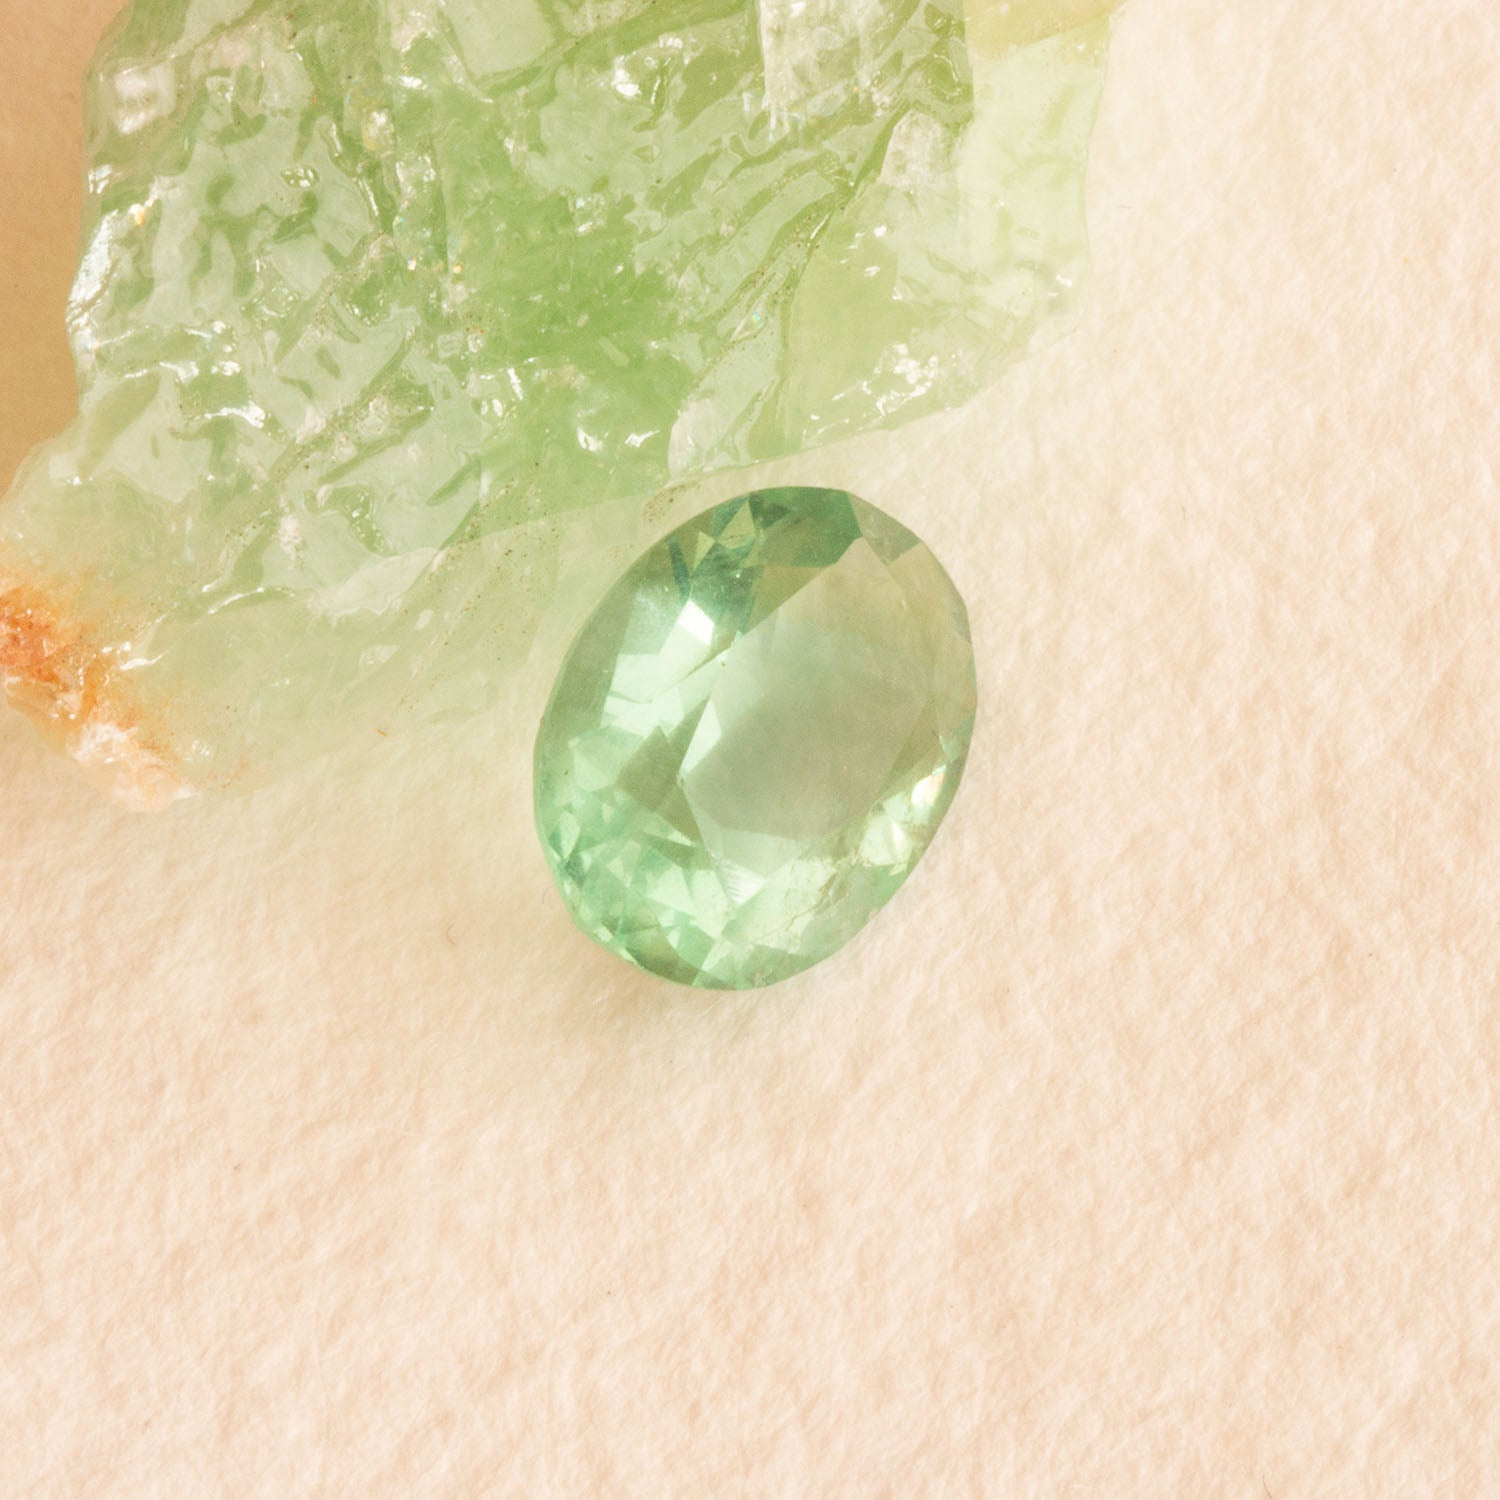 Green Fluorite oval cut 1.30ct, clean pale green oval faceted stone, a pretty clear stone suitable for cocktail or engagement ring, soft green oval shape responsibly sourced gemstone